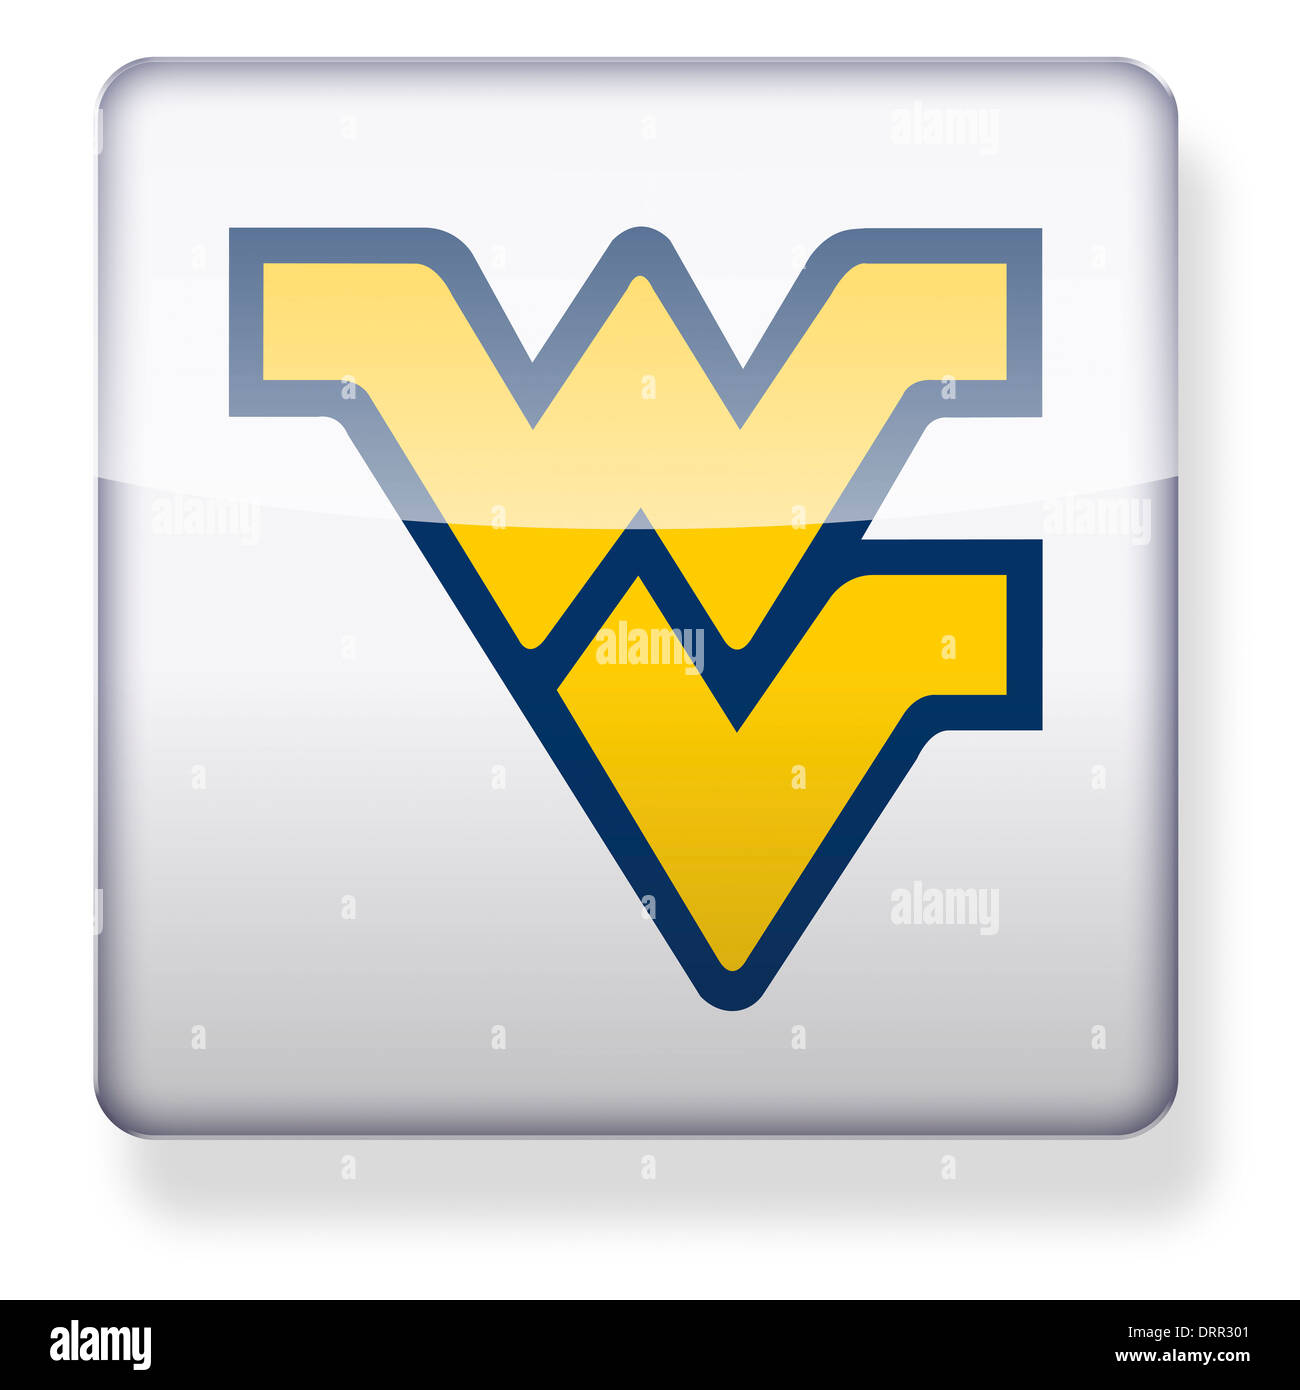 info for 6debc 21c08 West Virginia Mountaineers US college football logo as an app icon.  Clipping path included.